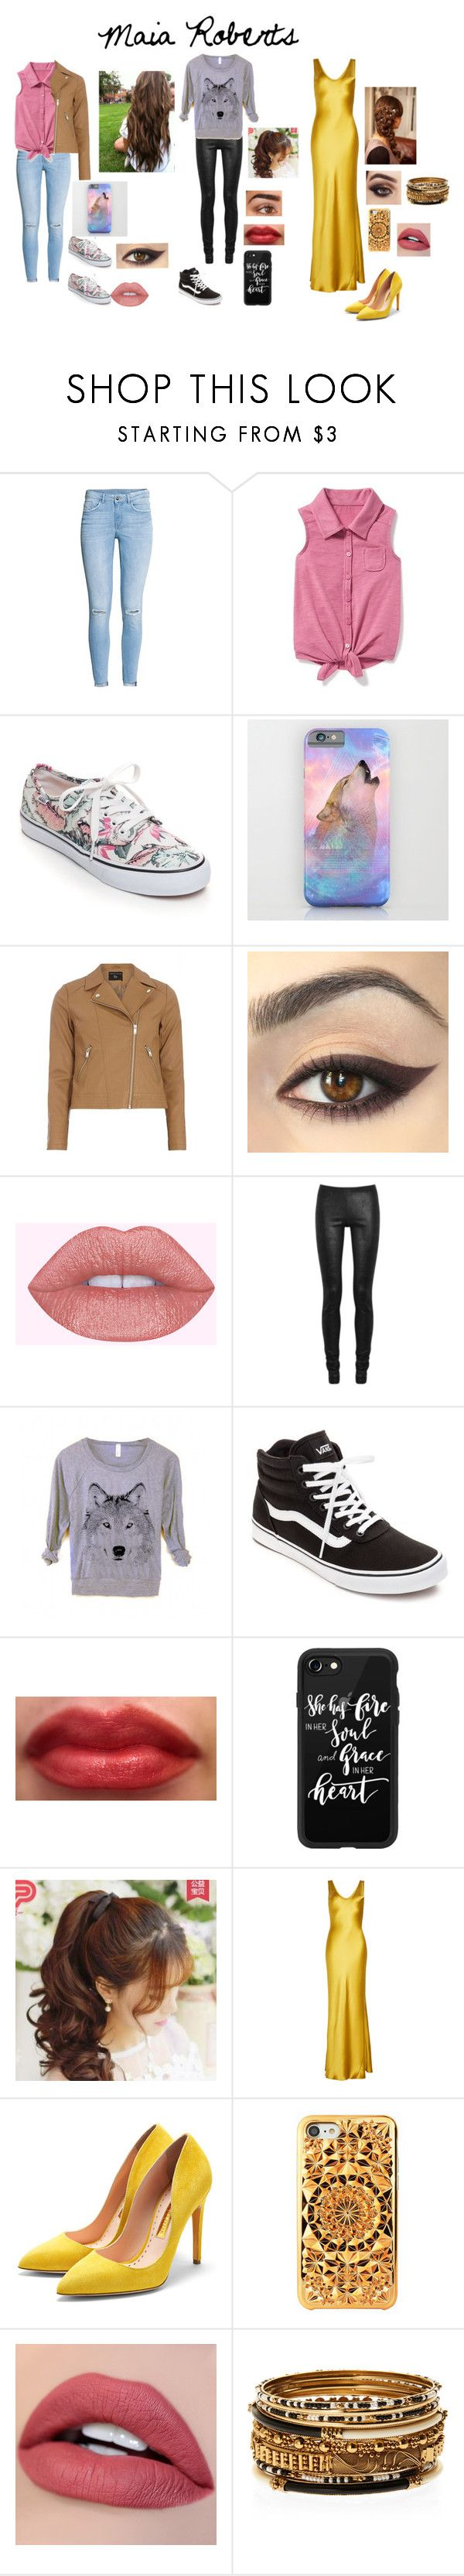 """""""Maia Roberts"""" by a-fangirl-mrc on Polyvore featuring H&M, Old Navy, Vans, Dorothy Perkins, Rick Owens, Casetify, Pin Show, Galvan, Rupert Sanderson and Felony Case"""